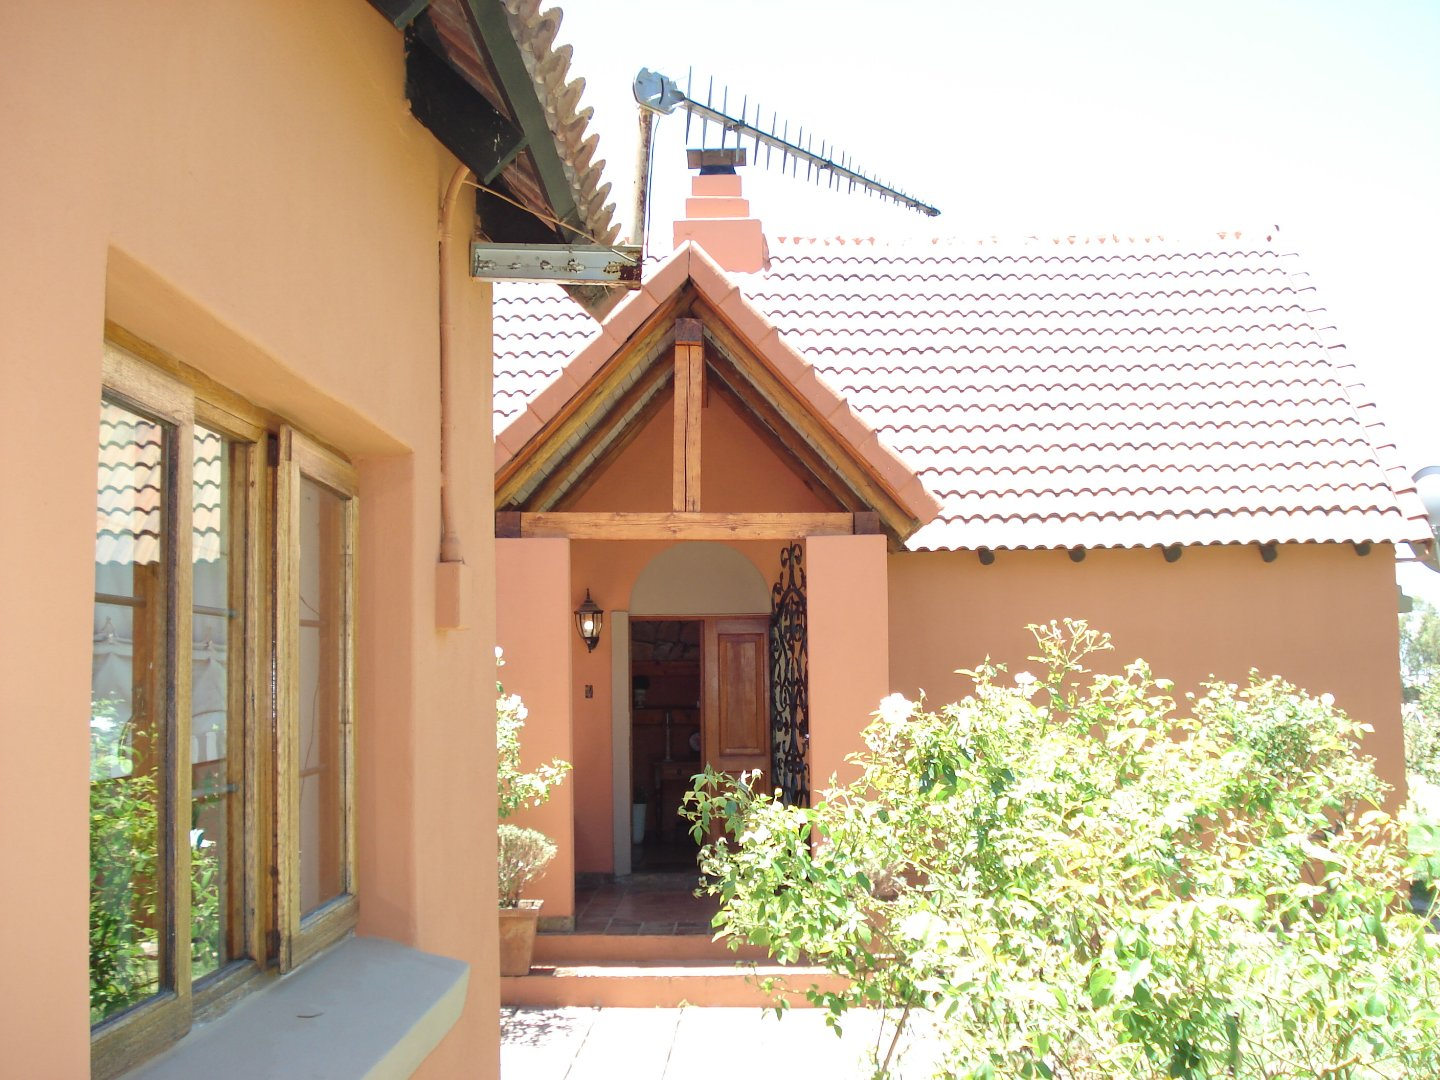 Cullinan, Cullinan Central Property  | Houses For Sale Cullinan Central, Cullinan Central, Farms 3 bedrooms property for sale Price:2,450,000